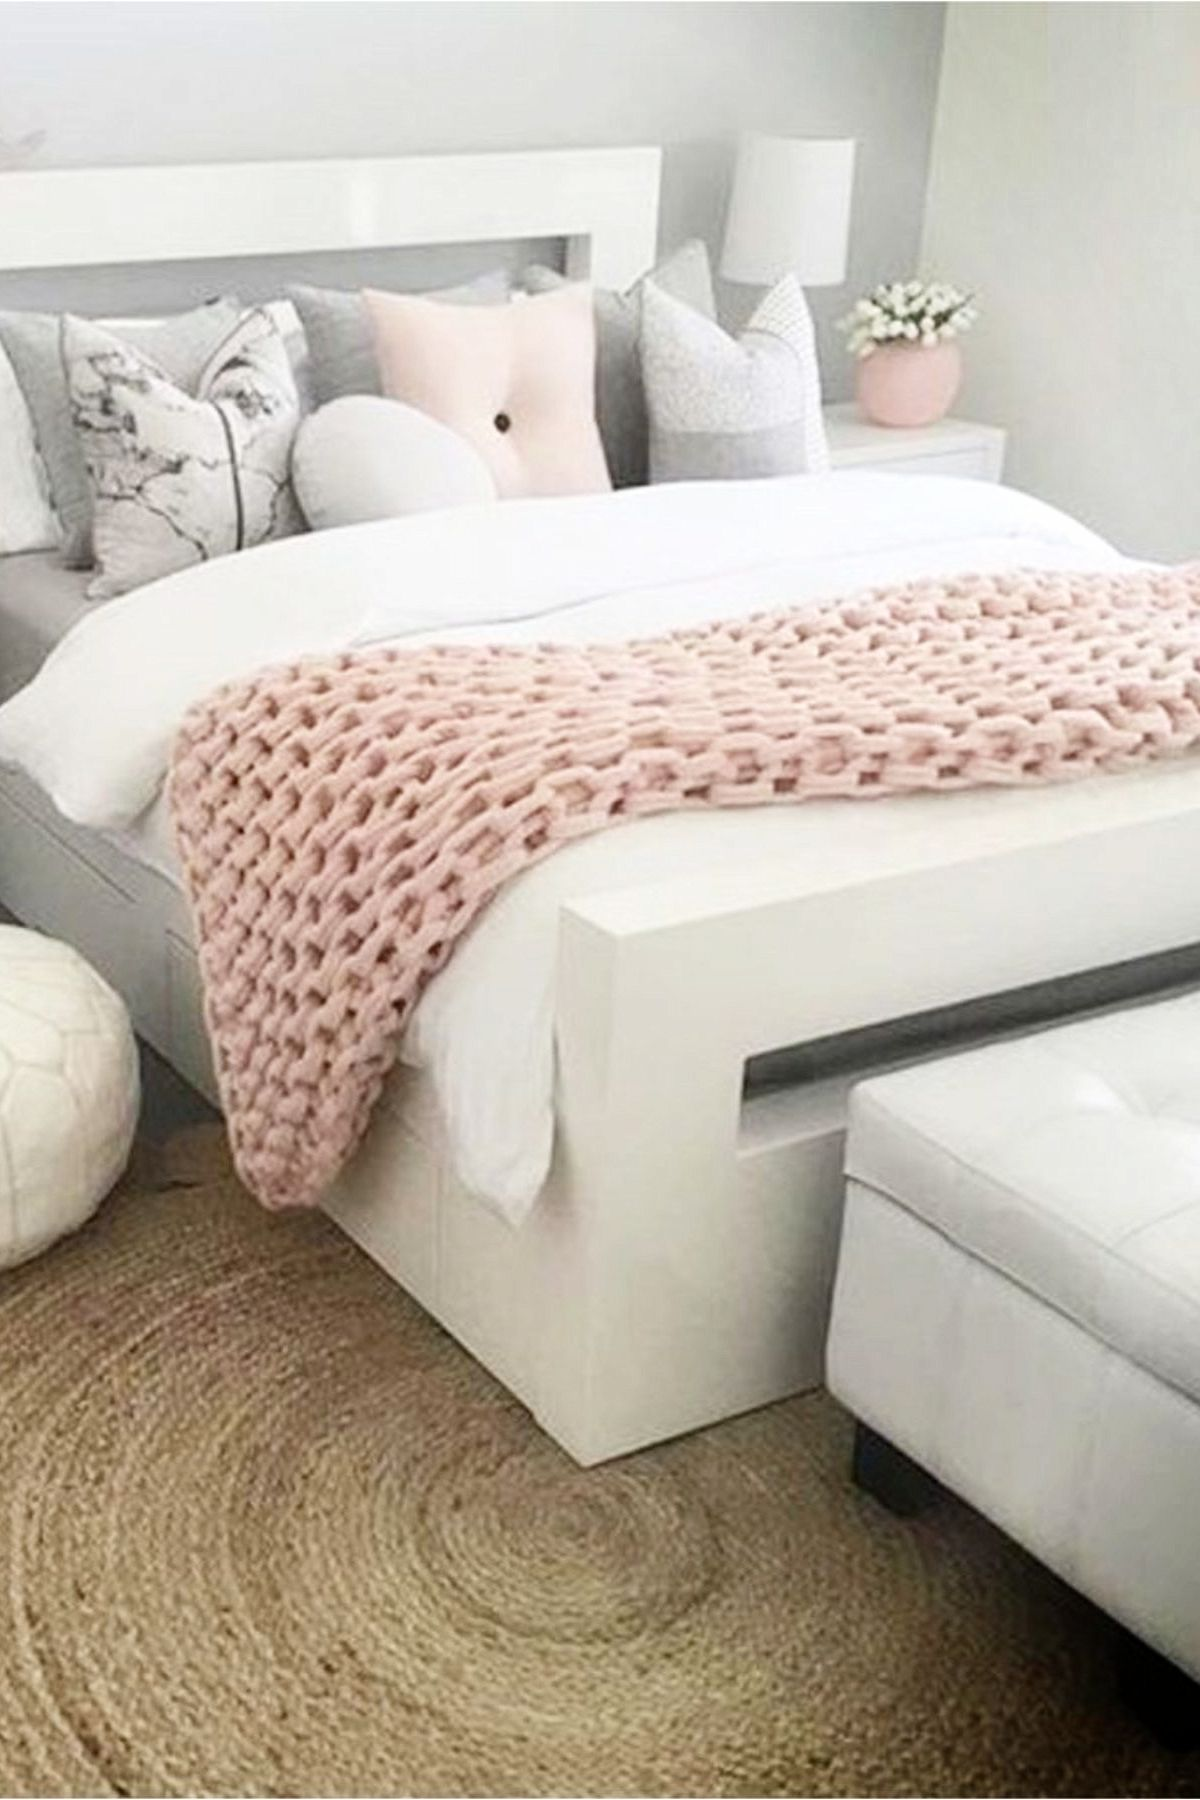 Blush Pink Bedroom Ideas Dusty Rose Bedroom Decor And Bedding I Love Clever Diy Ideas Pink Bedroom Decor Dusty Pink Bedroom Pink Bedrooms